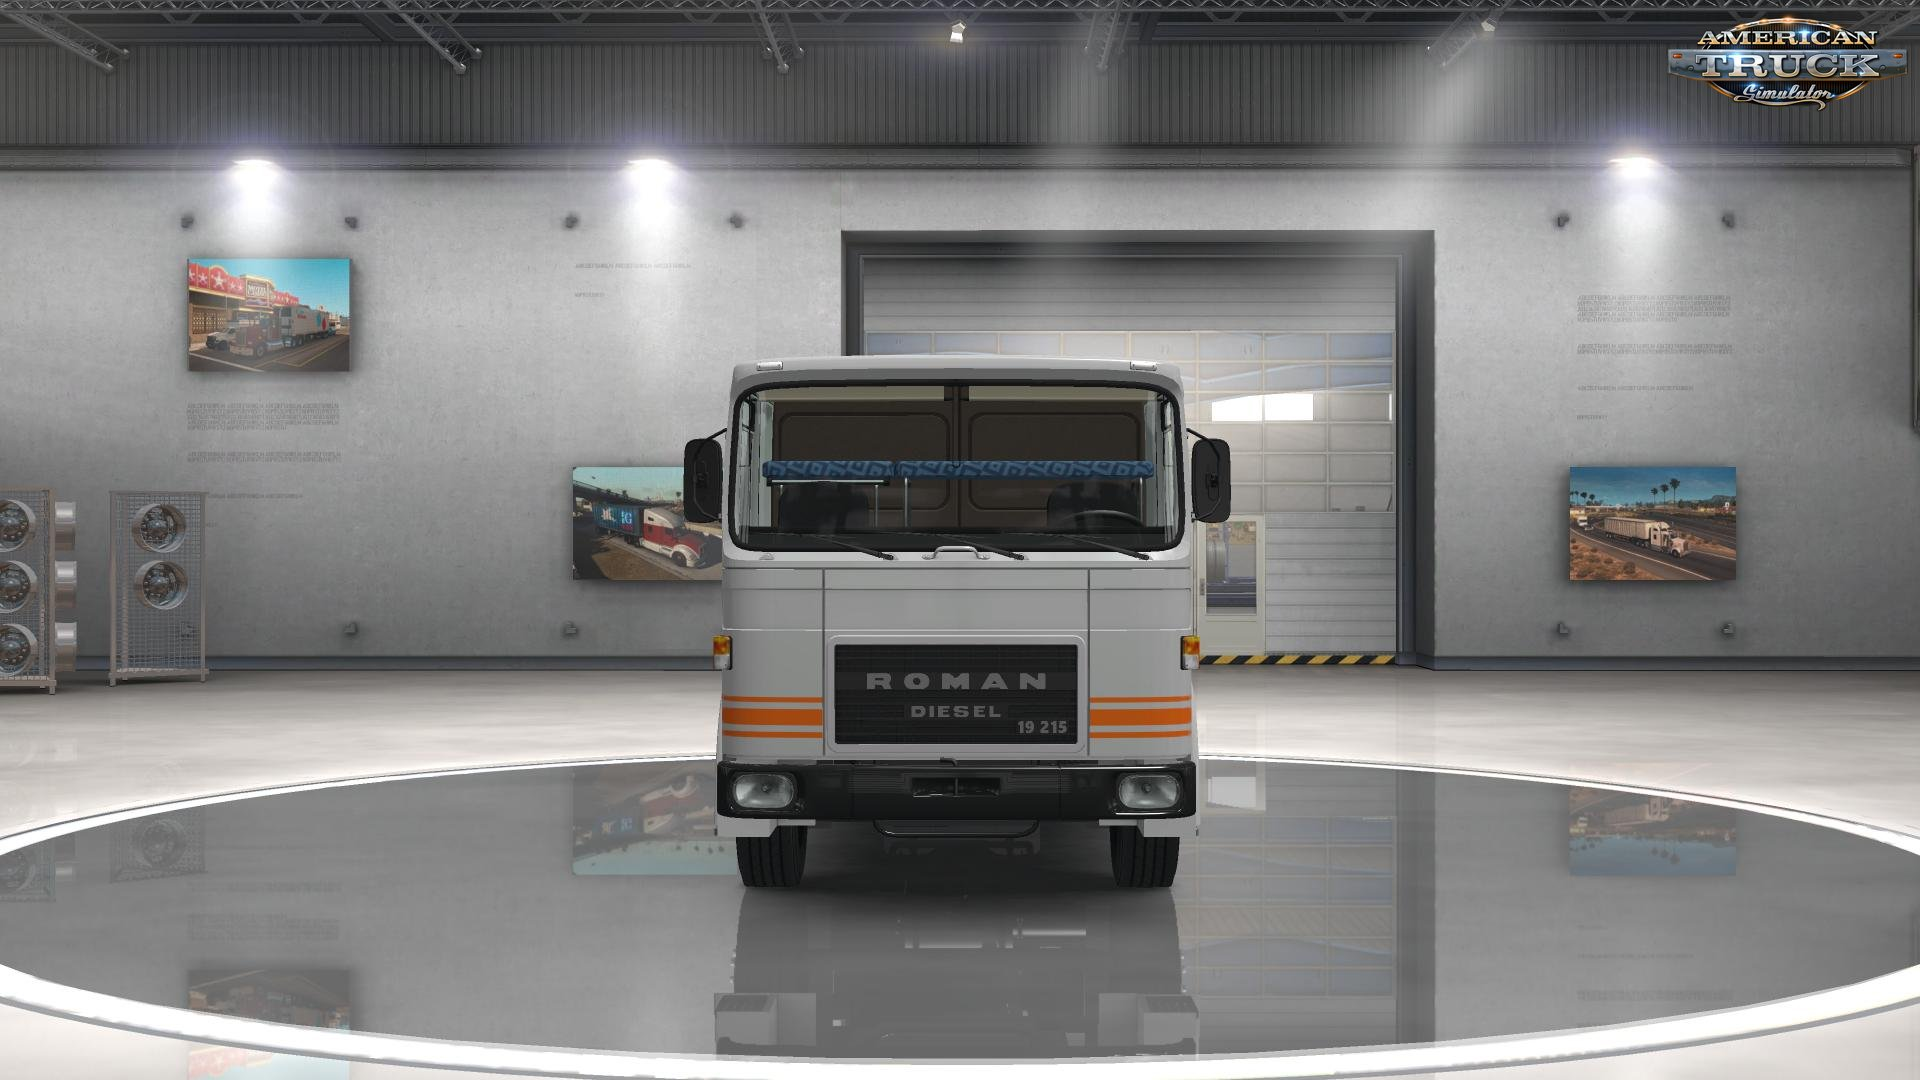 ROMAN Diesel + Interior v1.1 by MADster (1.31.x) (ATS)